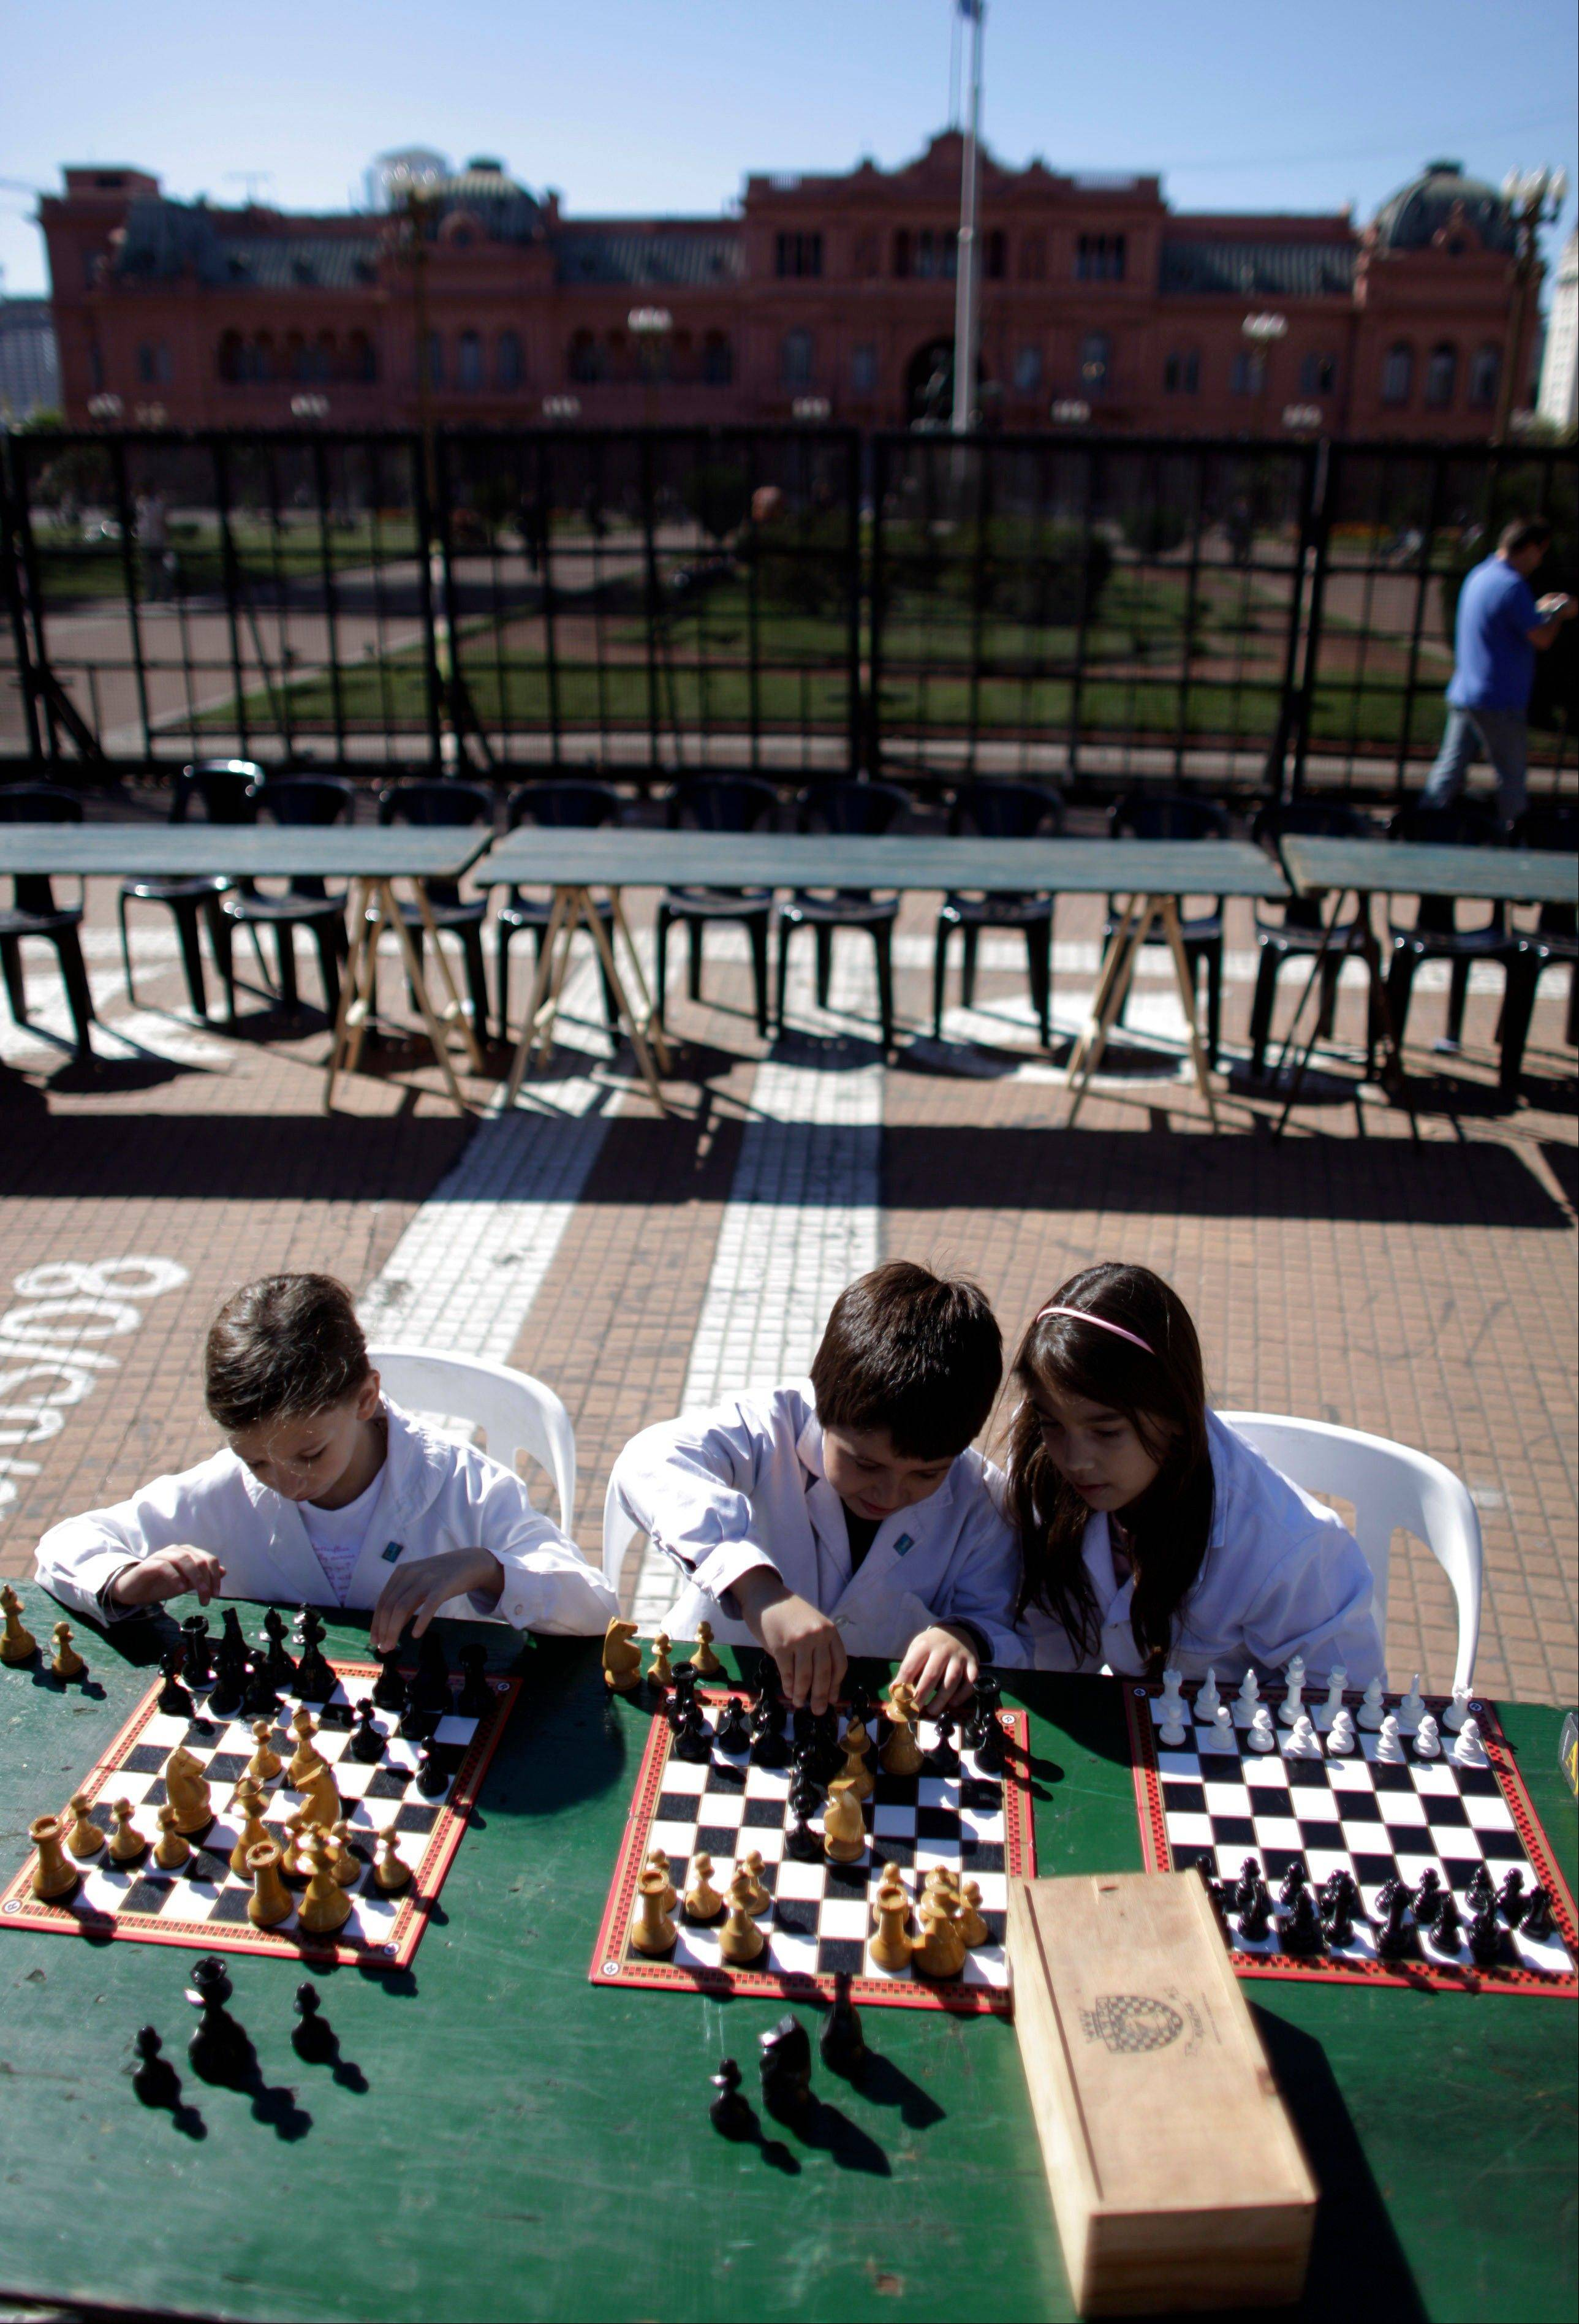 Students play chess at the Plaza de Mayo during the Argentina's School Chess Day in Buenos Aires.